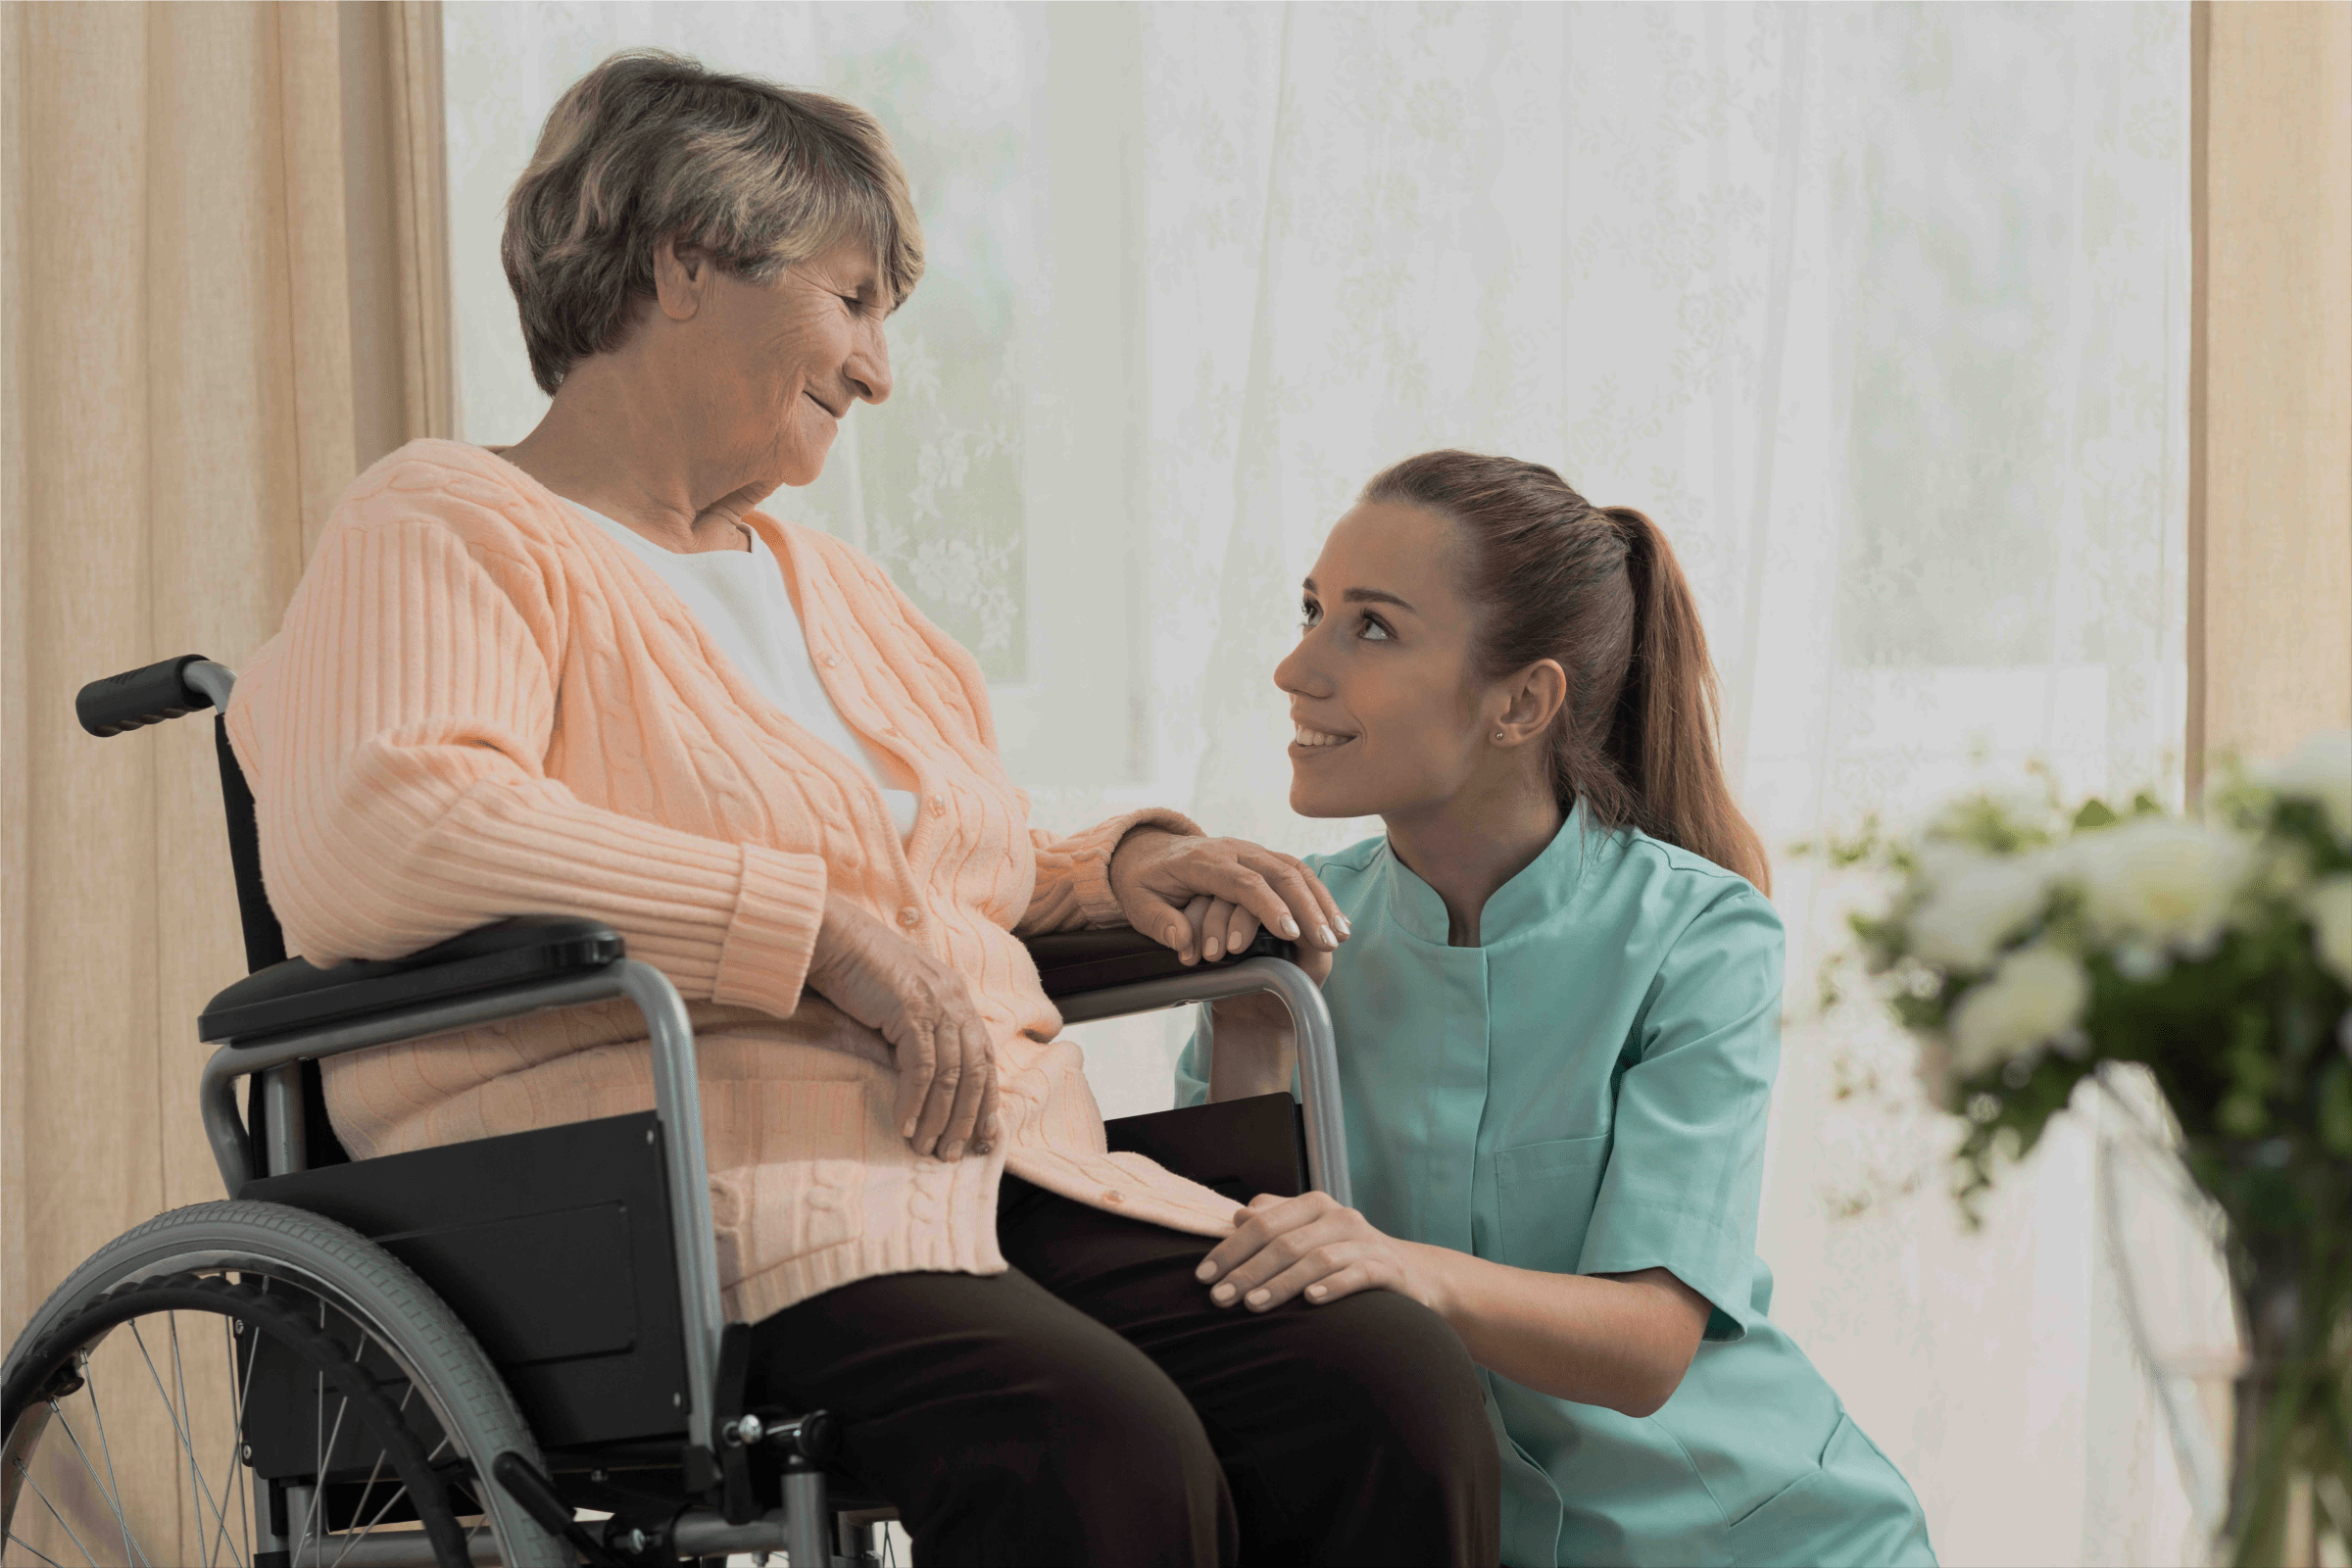 Useful Tips For Choosing The Right Home Care Agency | North East Connected